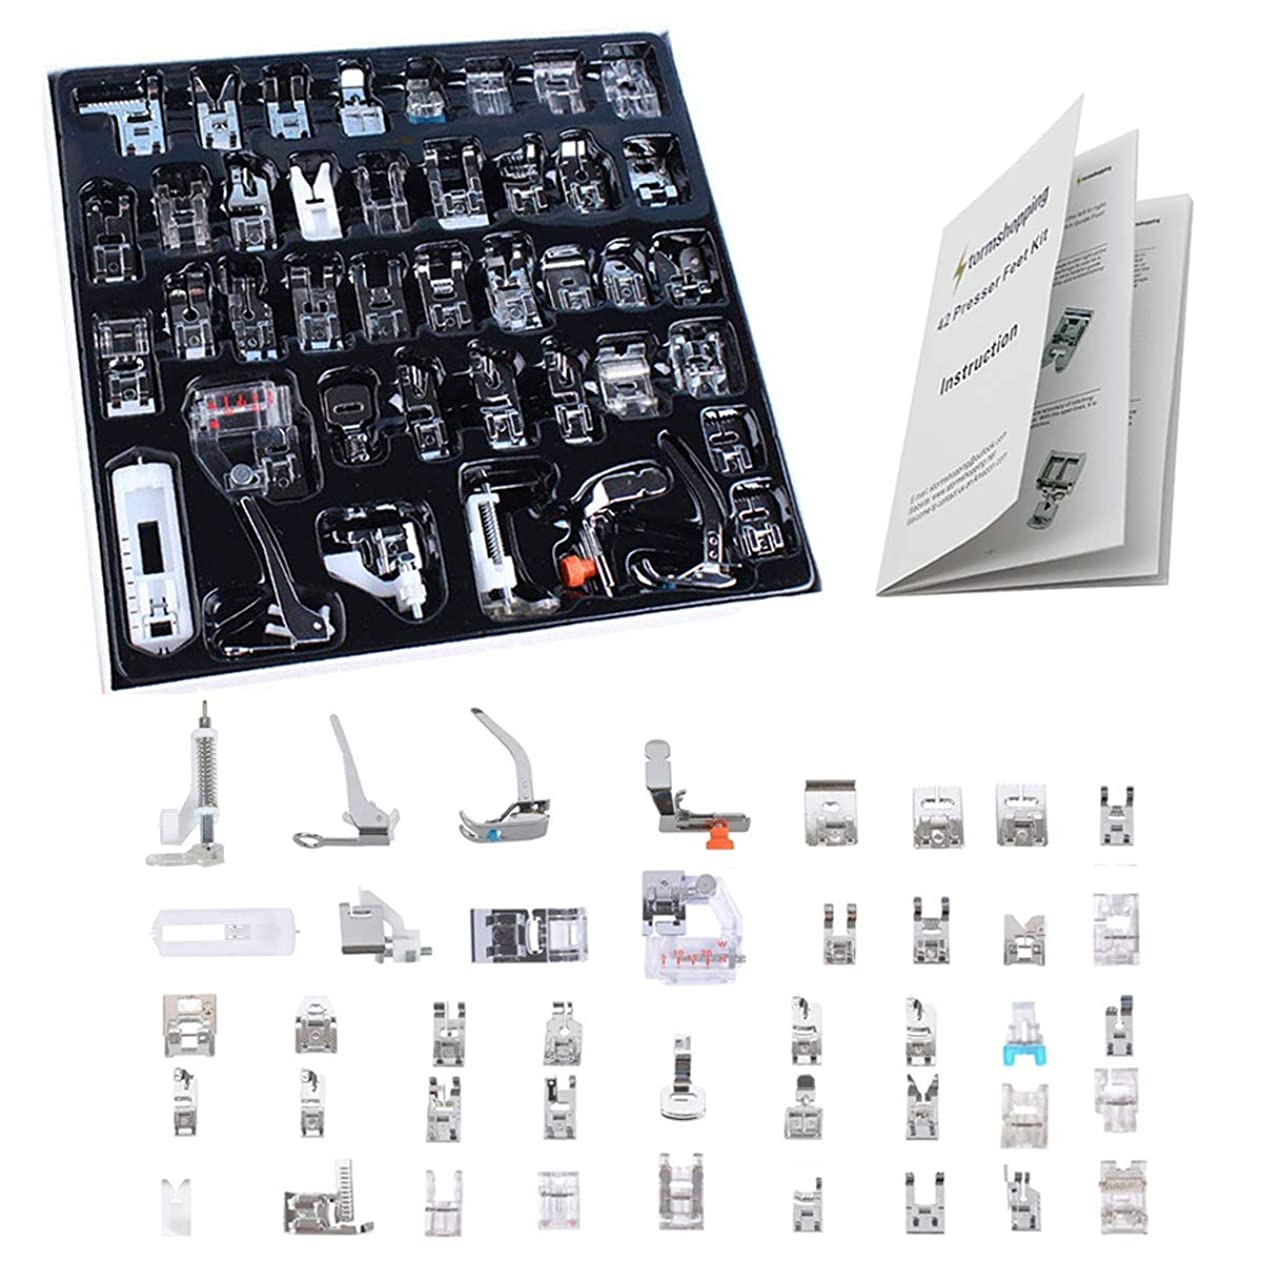 Professional Domestic 42 PCS Sewing Machine Sewing Foot Presser Foot Set with Manual for Brother, Singer, Babylock, Janome, Elna, Toyota, New Home, Simplicity and Kenmore Low Shank Sewing Machines ptjqdrftxmo22092